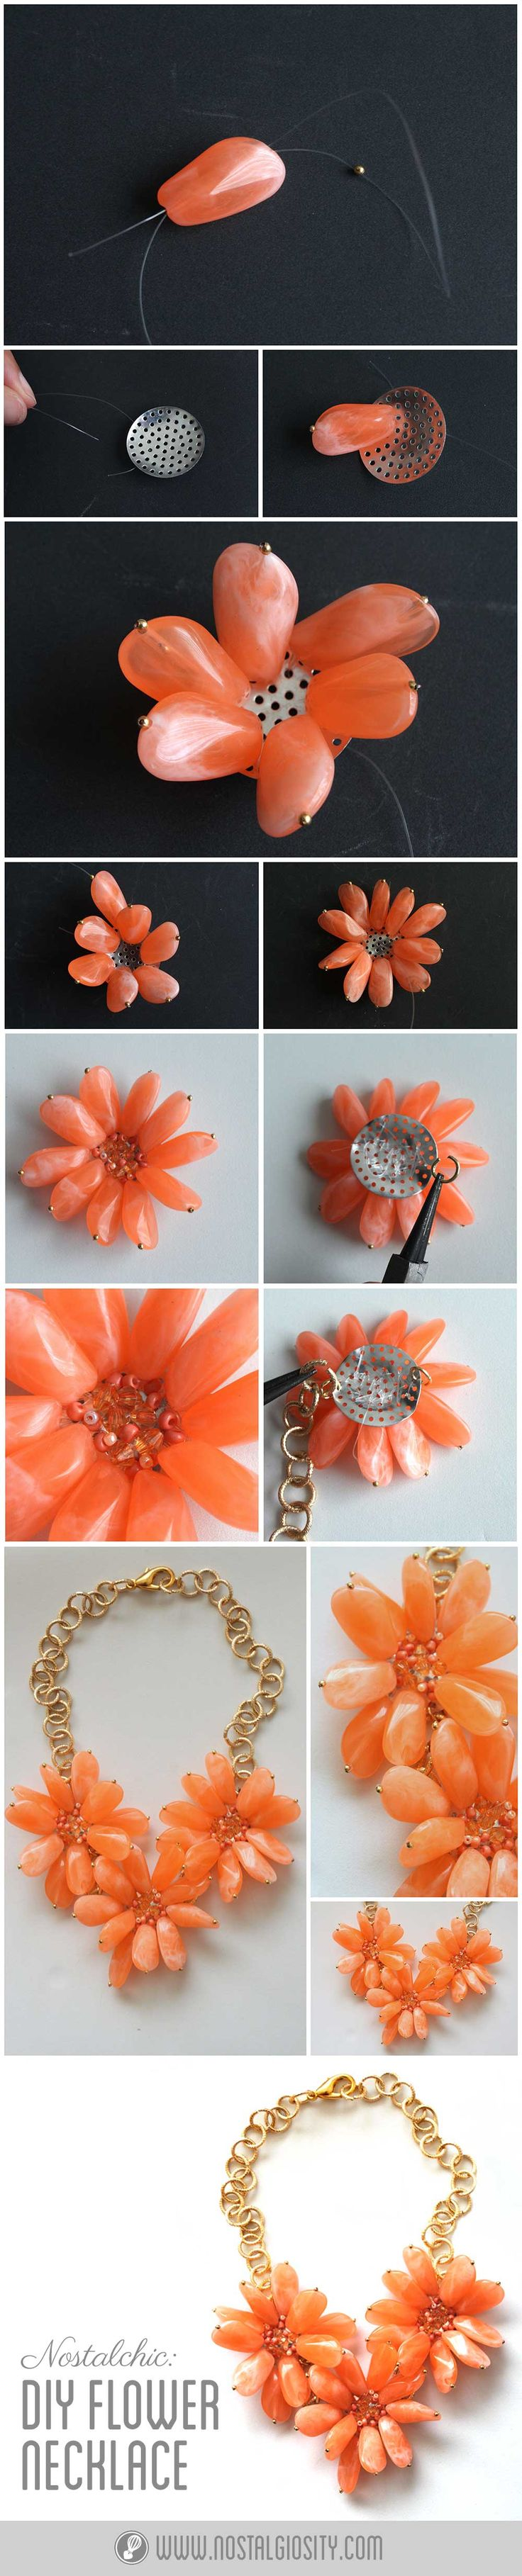 Nostalchic: DIY Flower Statement Necklace: